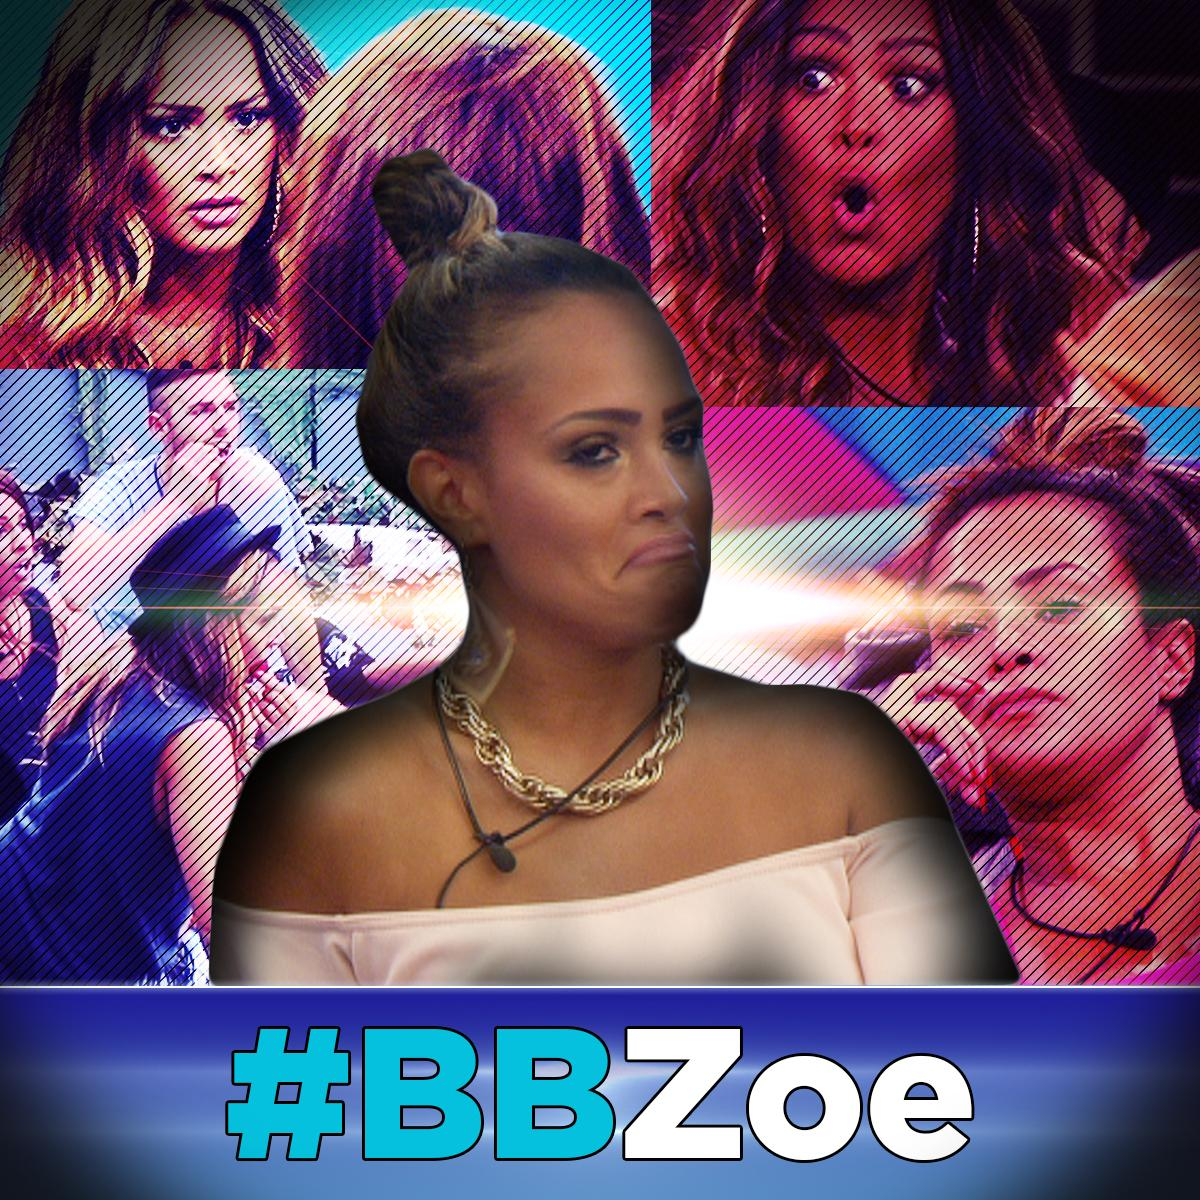 Or maybe you're team #BBZoe... Shout loud and proud with a RT if you're supporting her tonight.. #BBUK http://t.co/BZWL2FH0FV